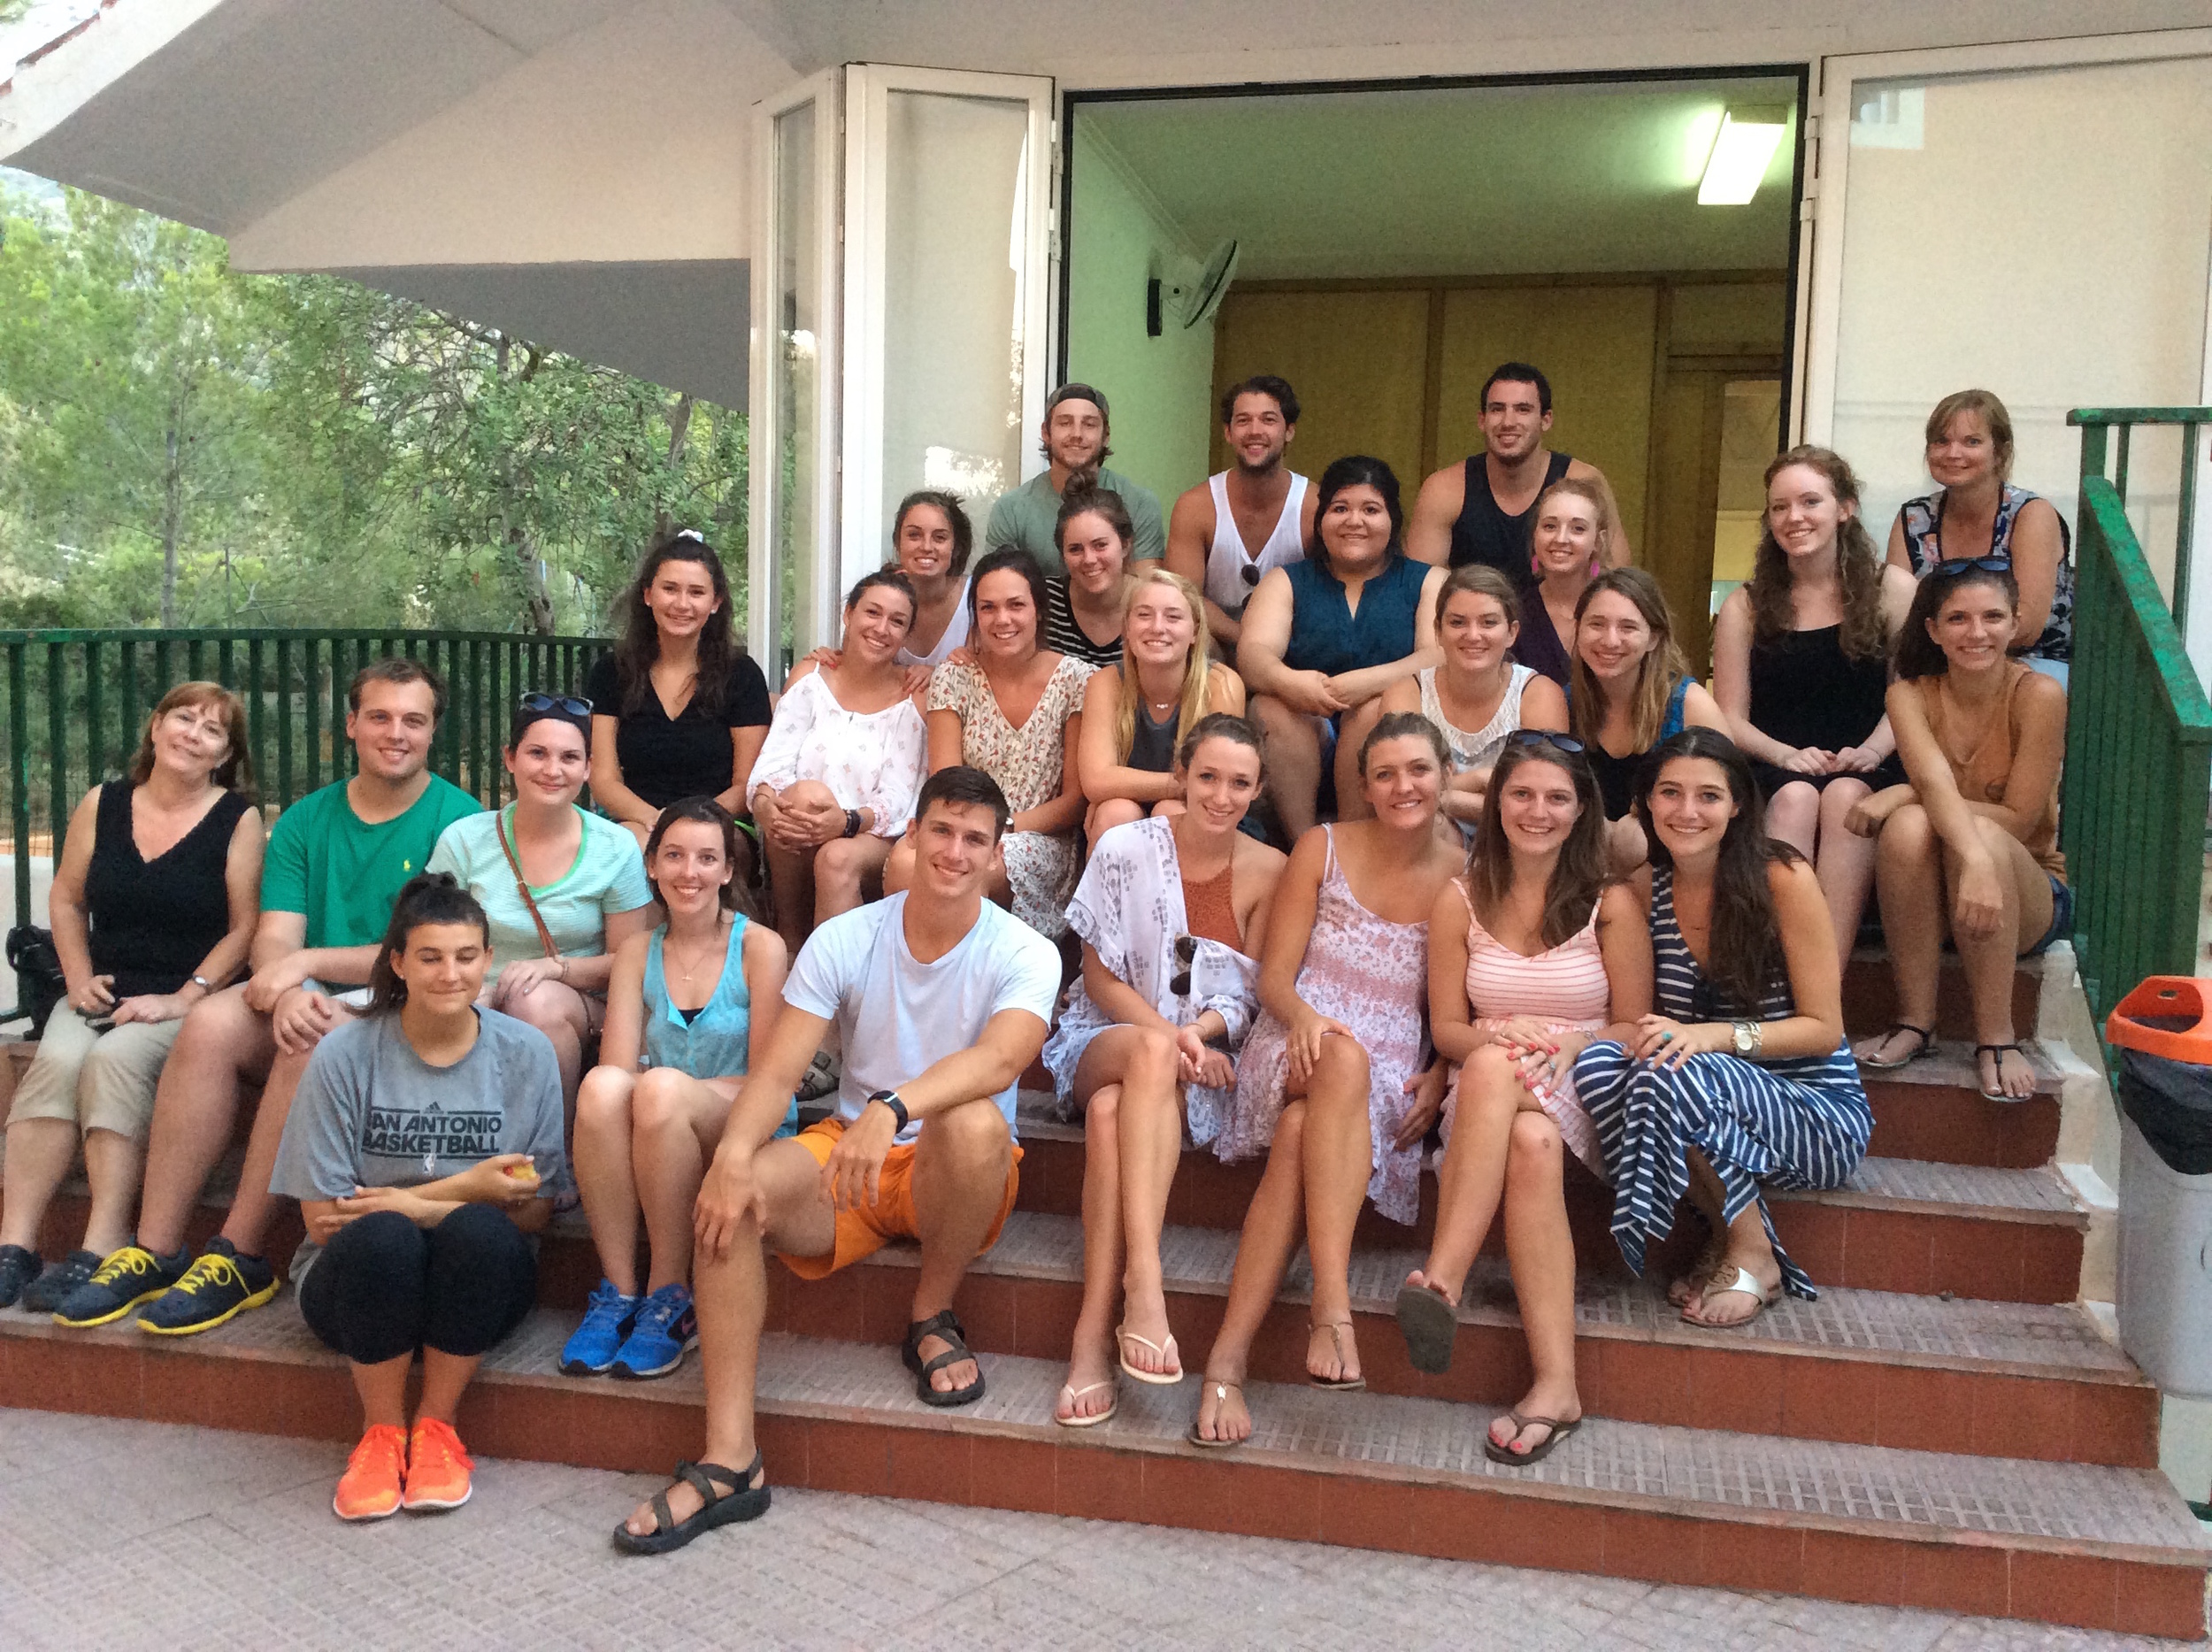 Baylor University's 2015 Mission Trip to Colegio ALfa & Omega - Dénia